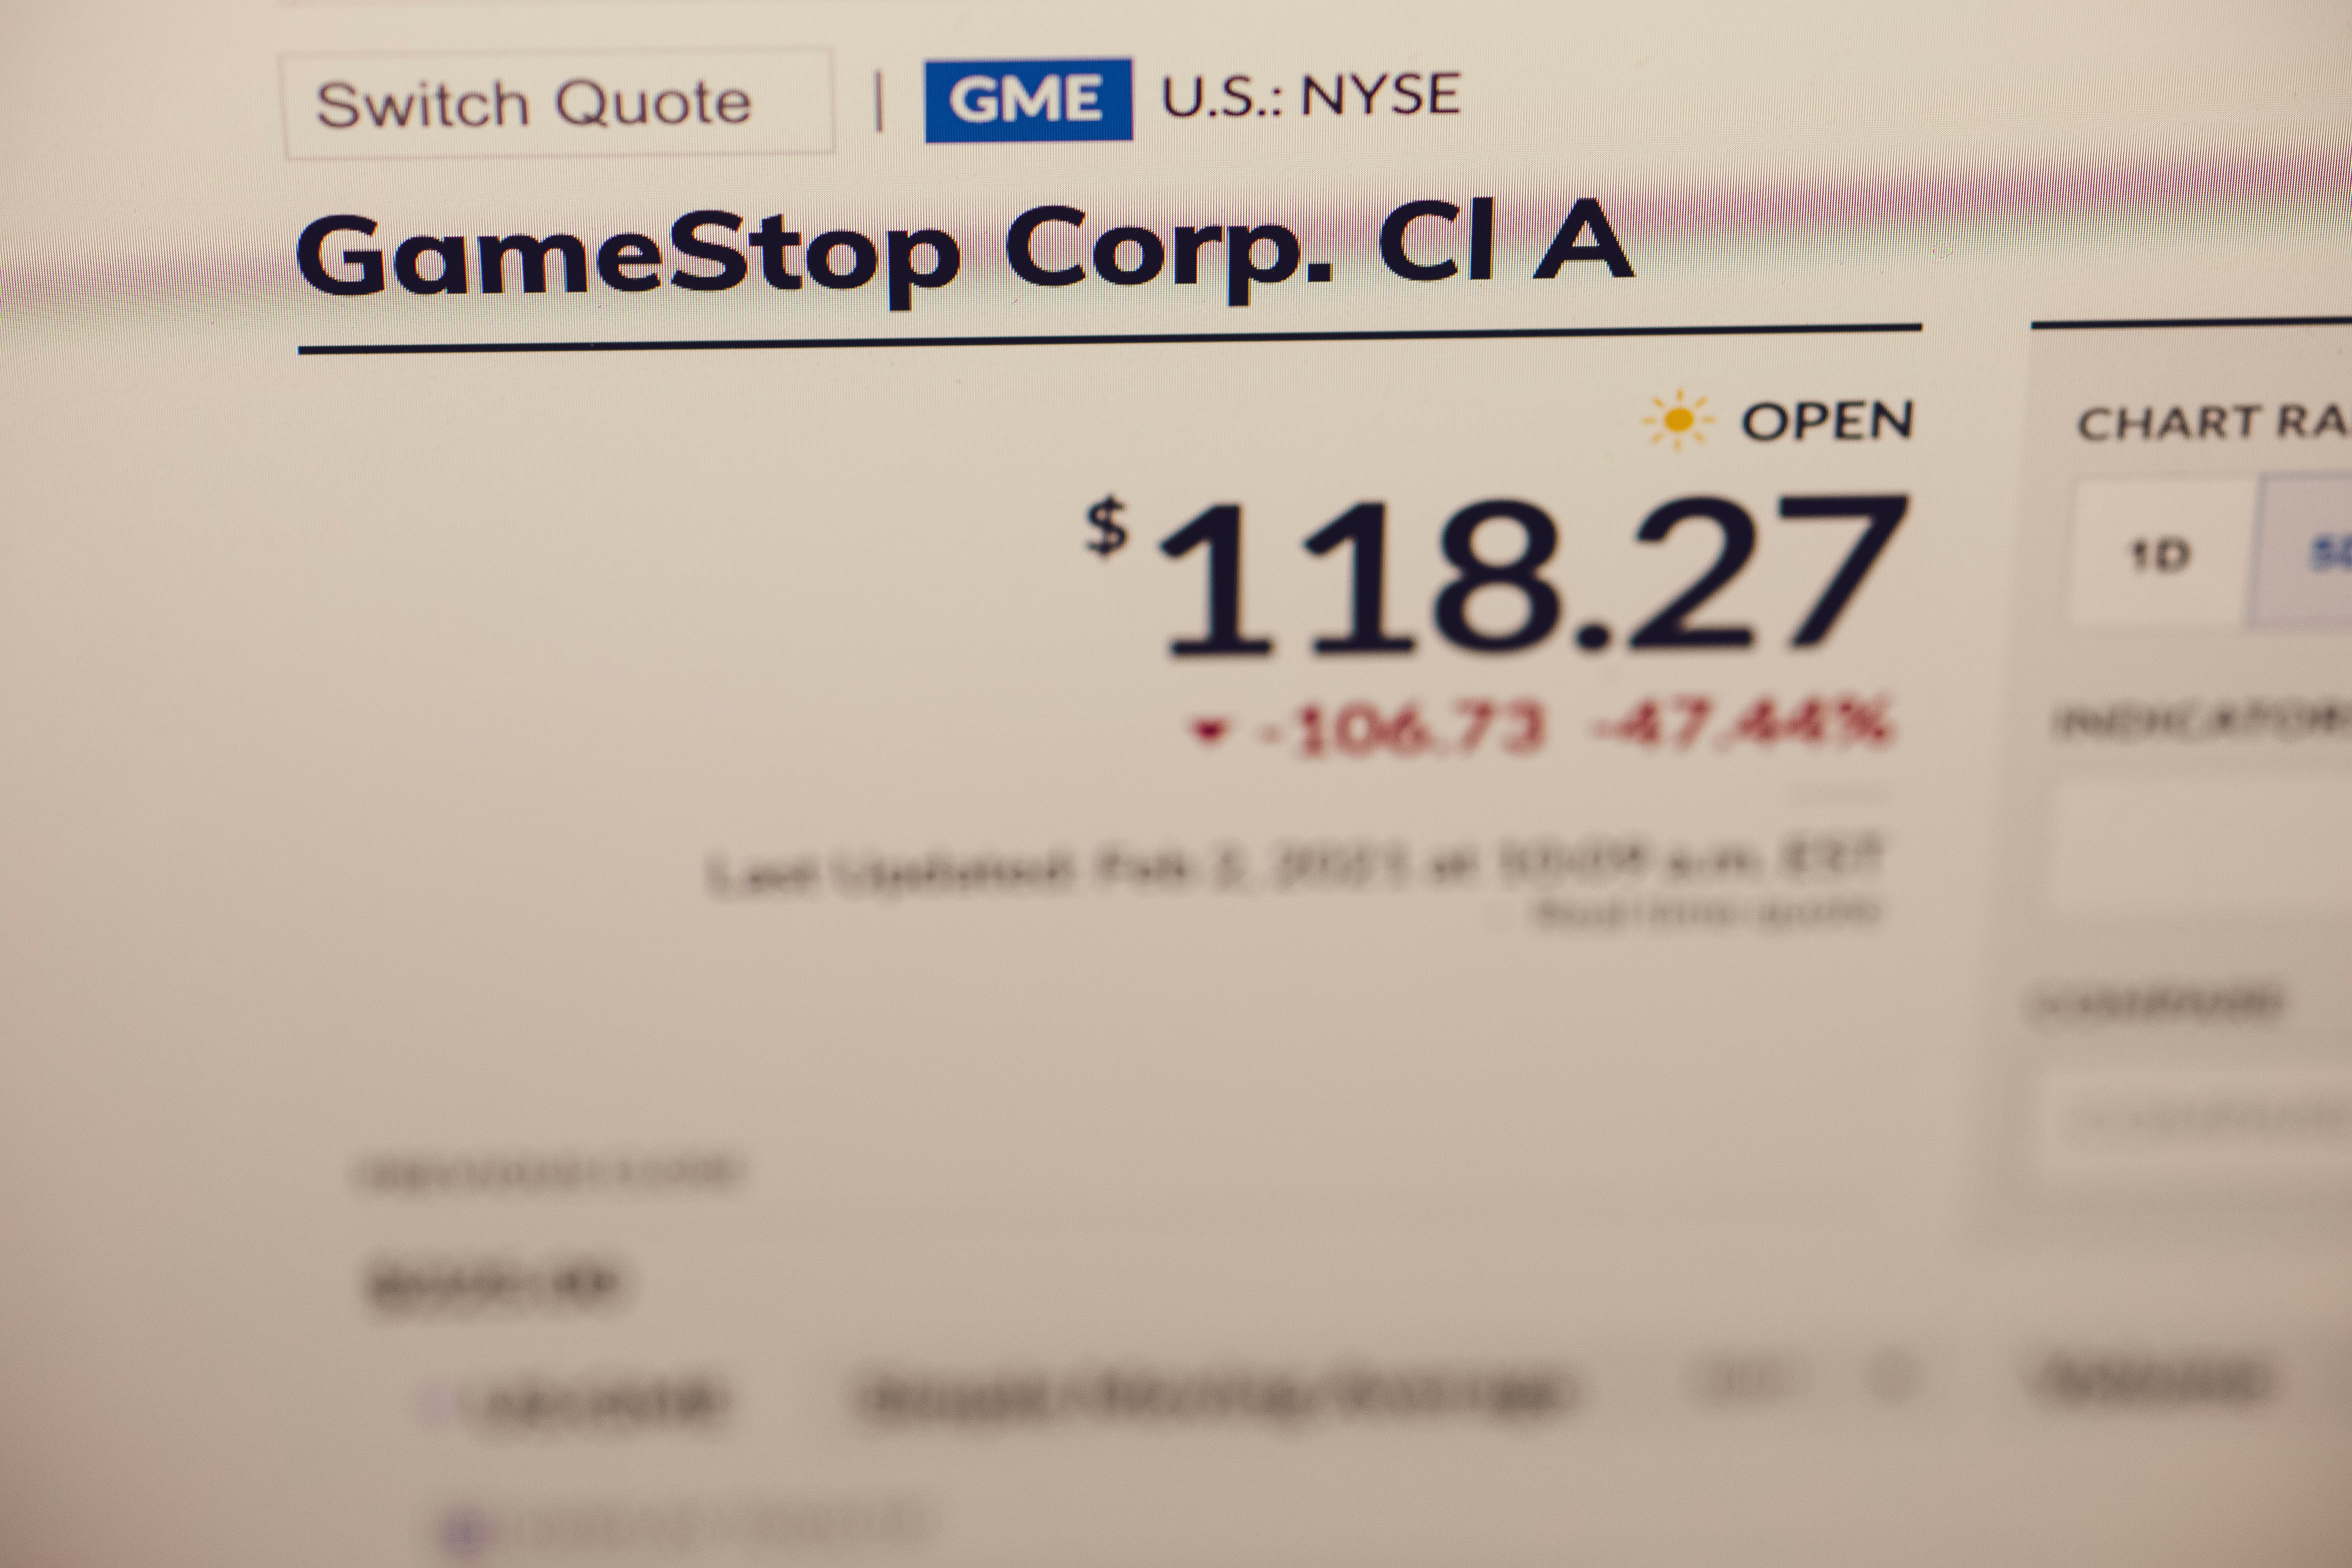 Will the Gamestop for interest markets?